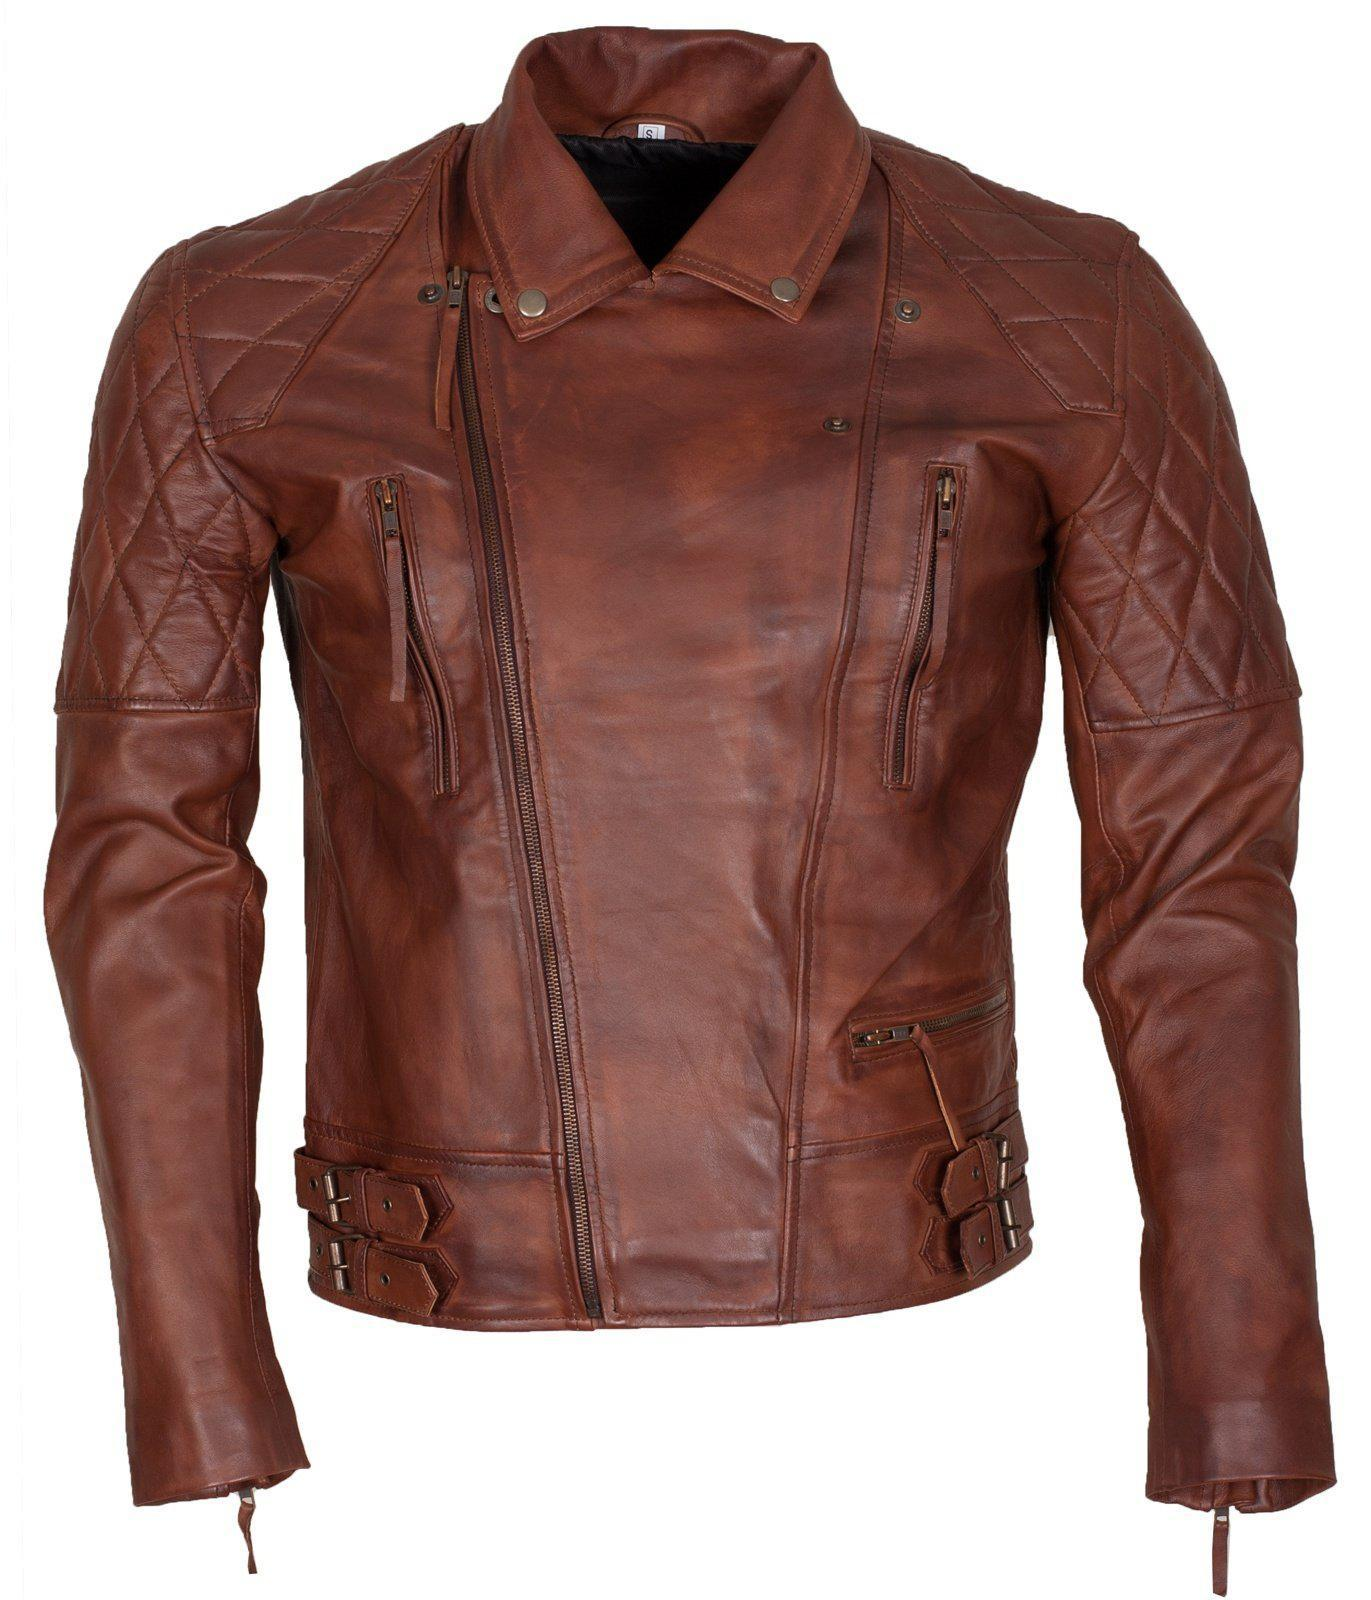 Brown Leather Jacket for Bikers